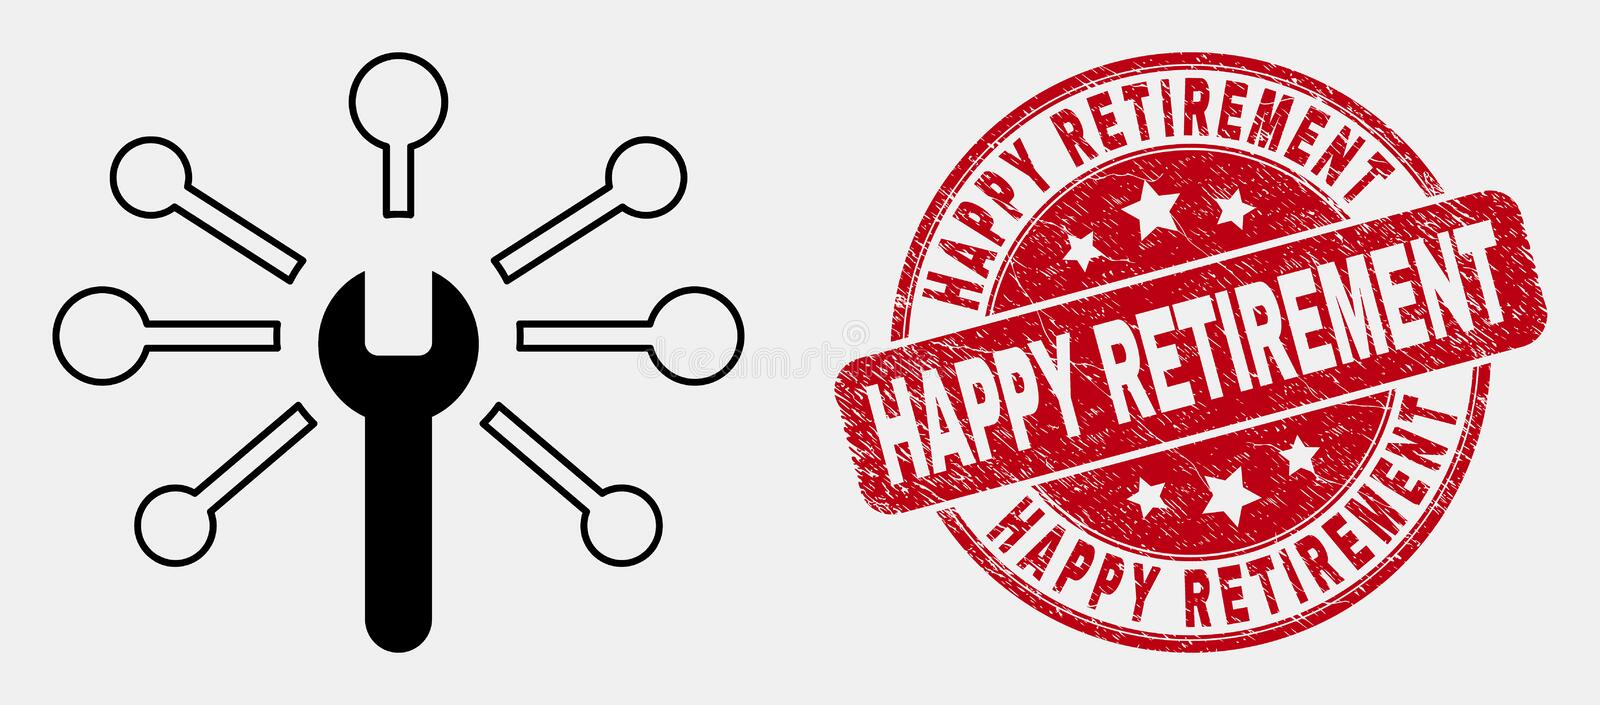 Vector Outline Wrench Links Icon and Grunge Happy Retirement Seal vector illustration